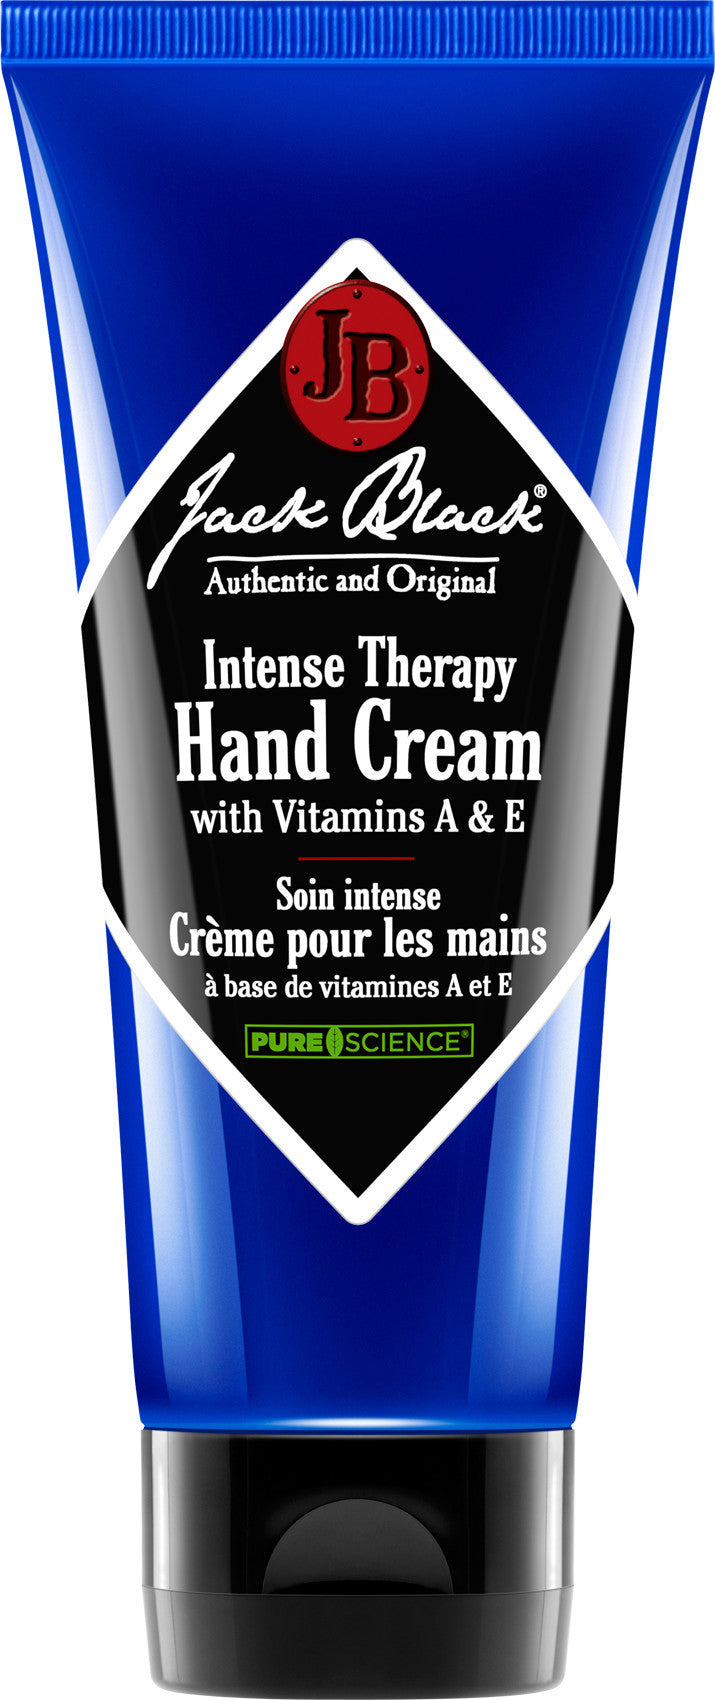 intense therapy hand cream || jack black || beautybar